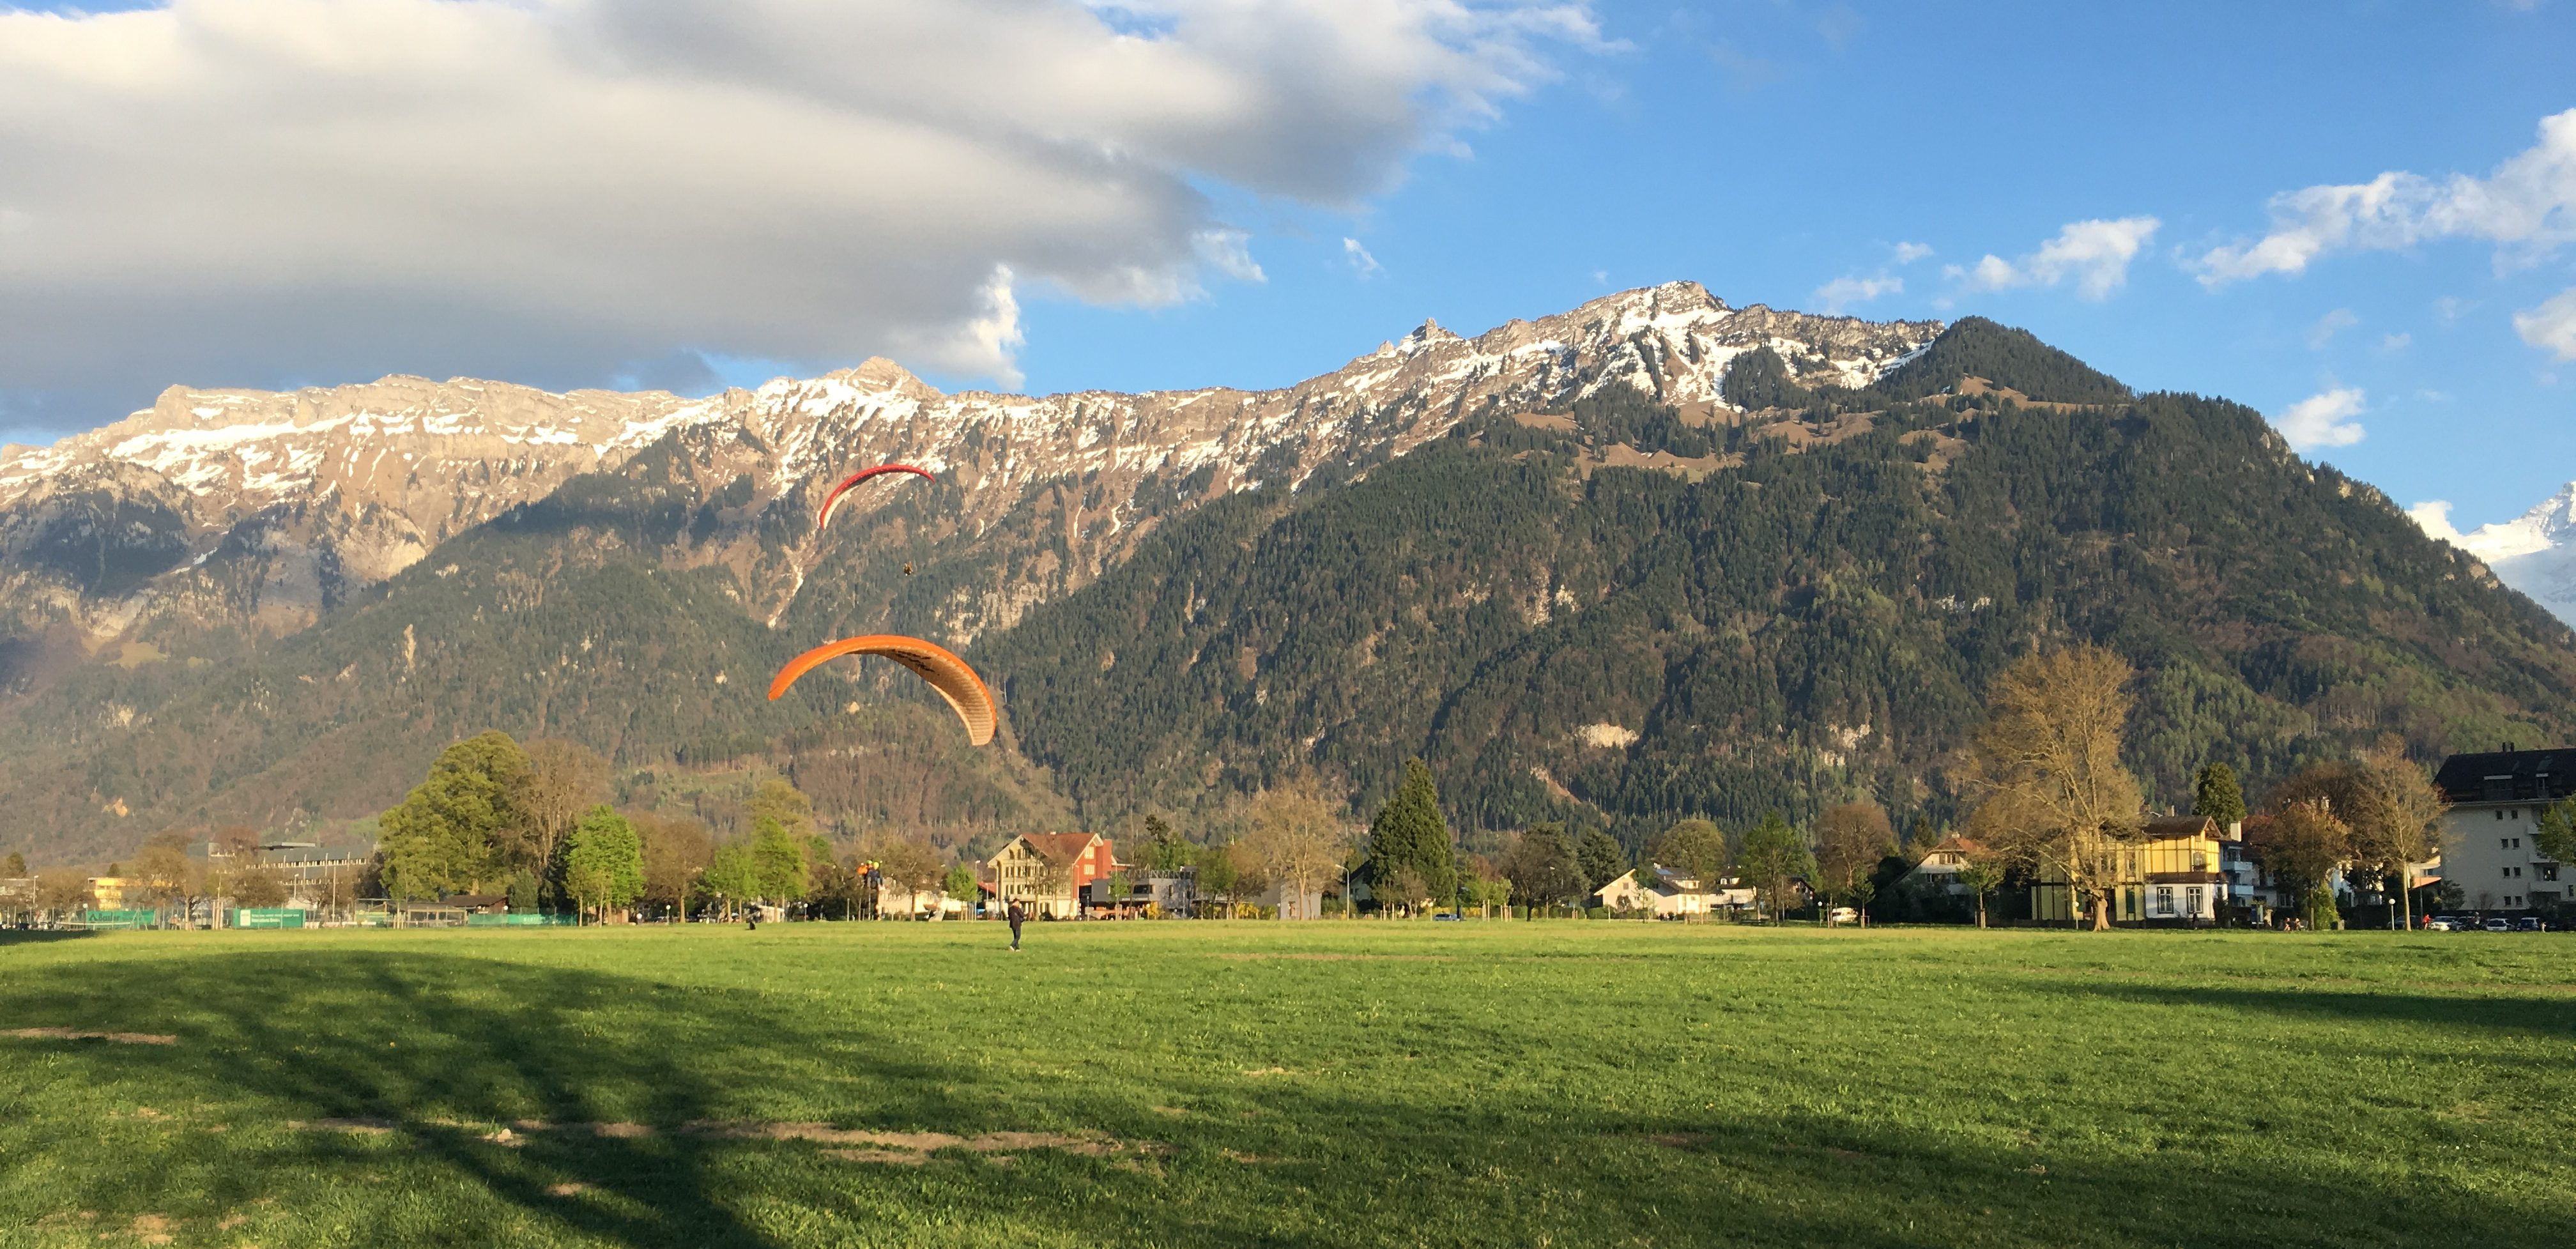 10 things to do in Interlaken - Interlaken